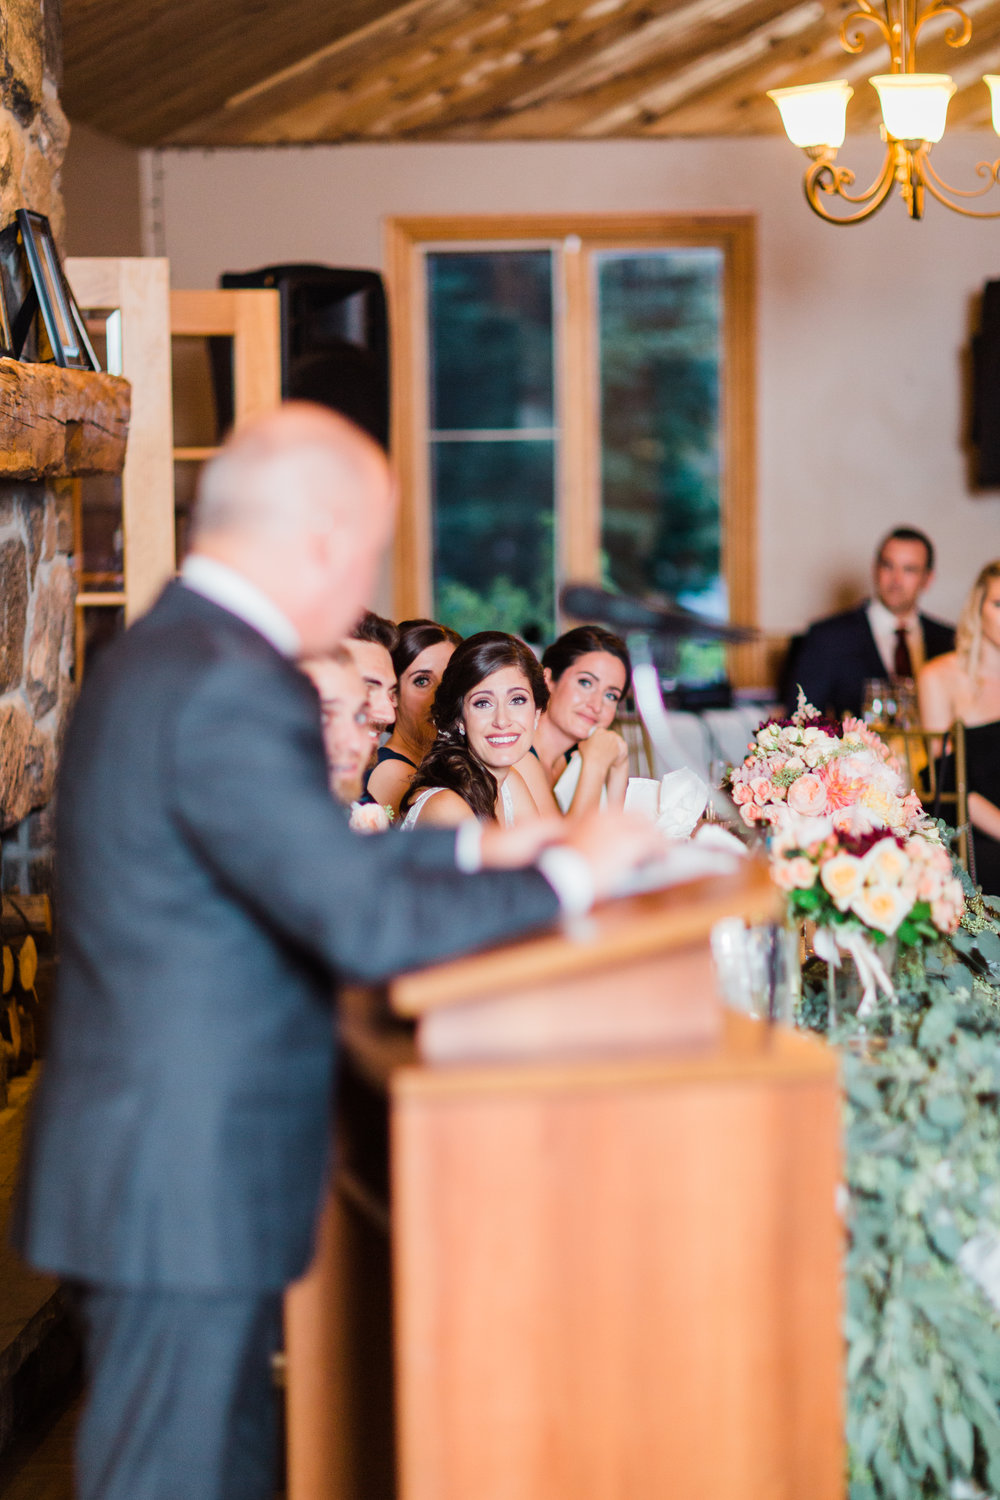 Amir-Golbazi-Danielle-Giroux-Photography_Toronto-Wedding_Cedarwood_Rachel-Paul_642.jpg